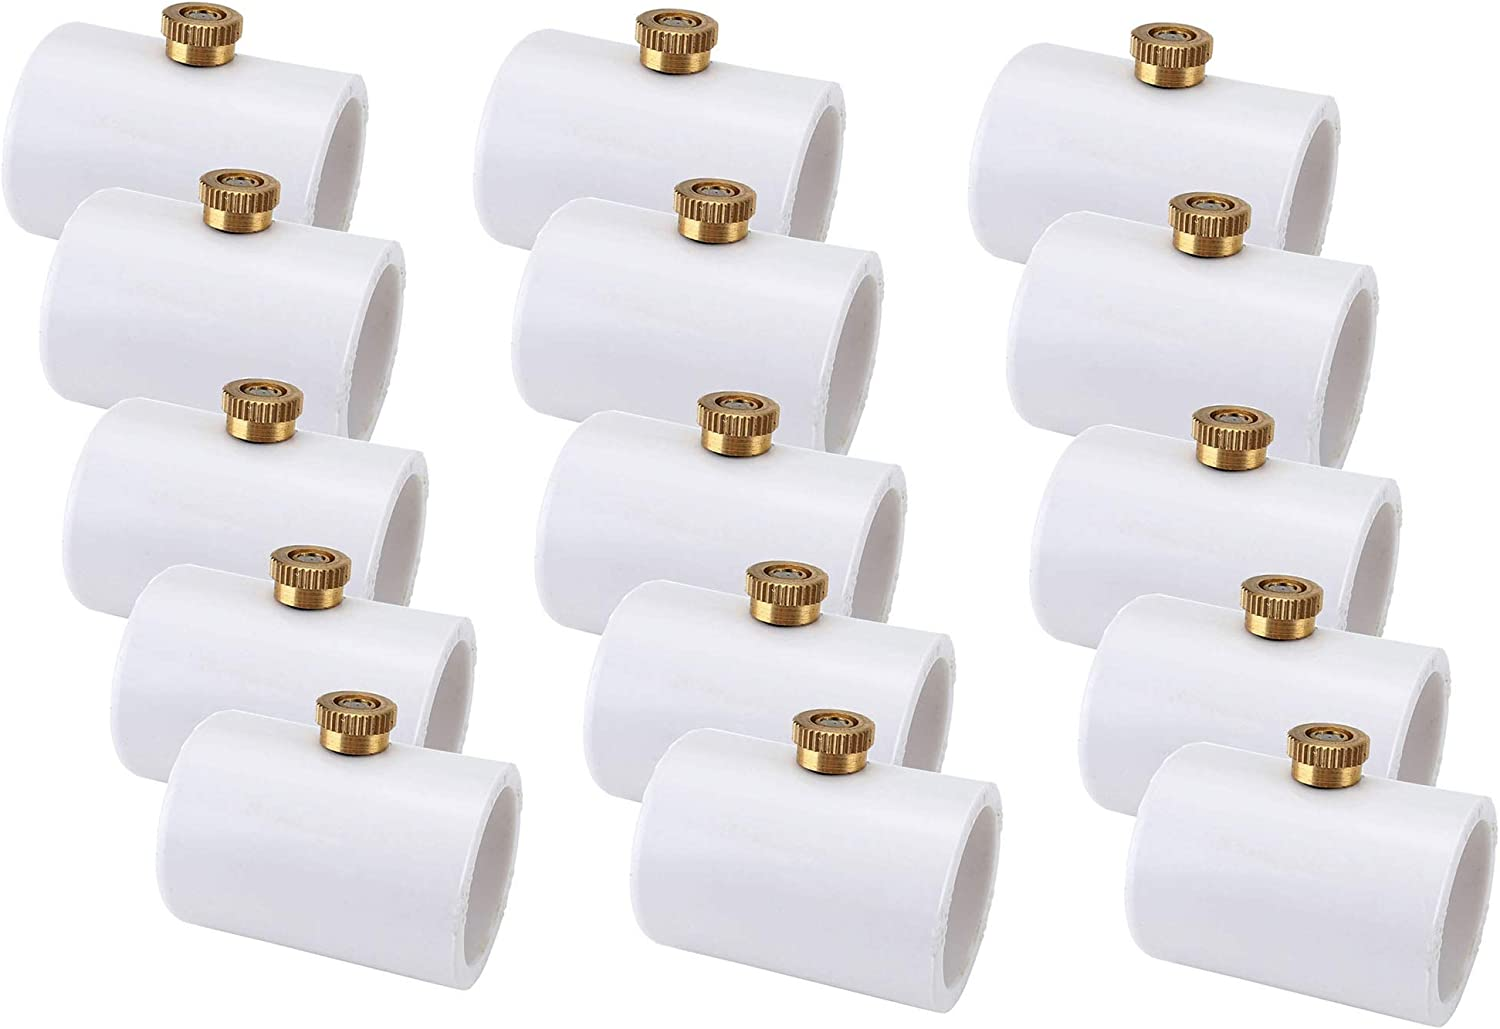 ACBungji 1/2 inch PVC Mister Coupling with Brass Mister Nozzle,PVC Split Section with Stainless Steel Heads (15)